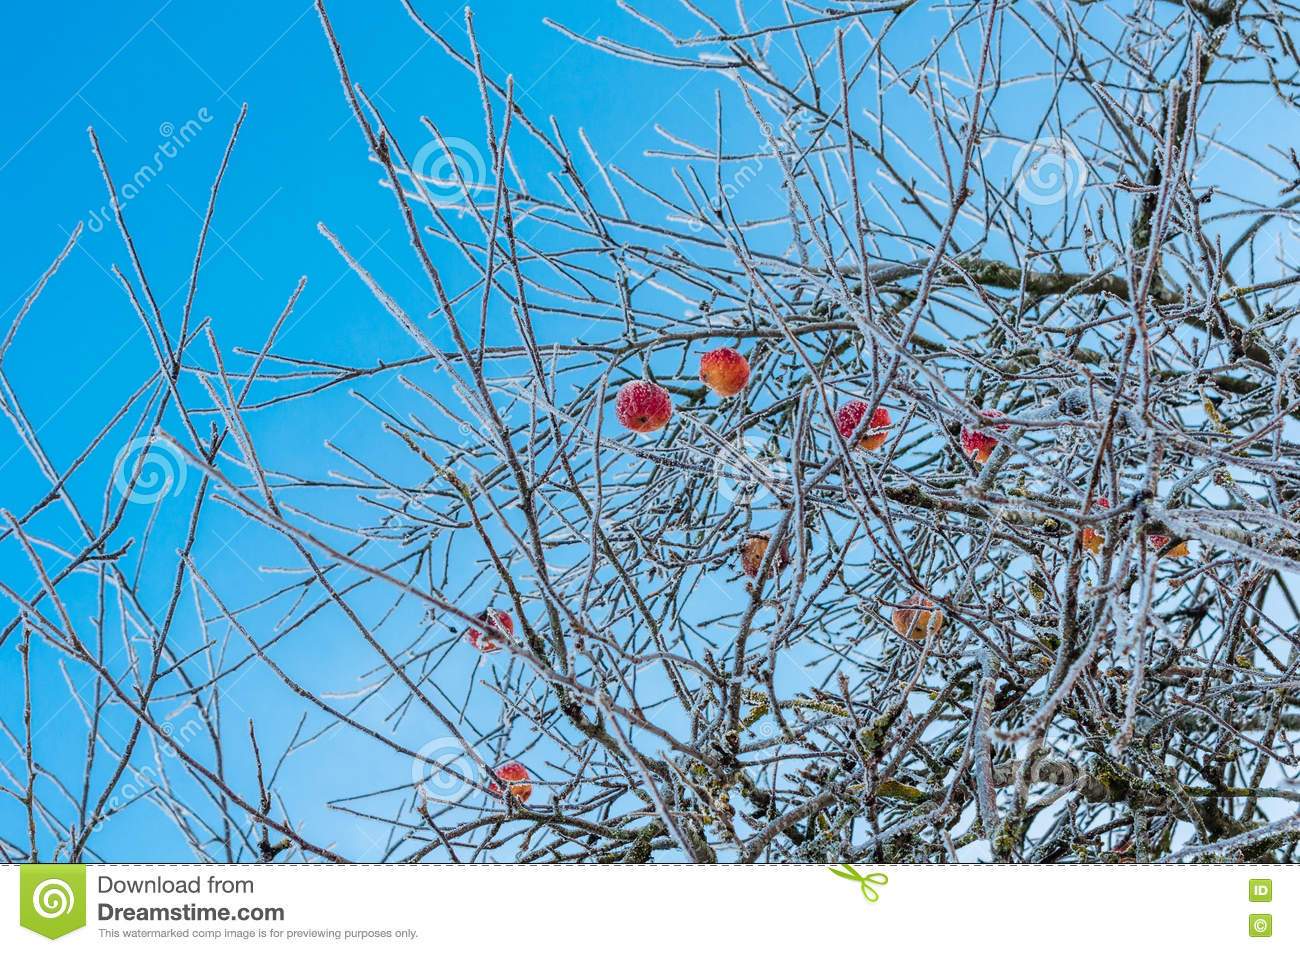 Bare and hoarfrosted apple trees with frozen red apples on it